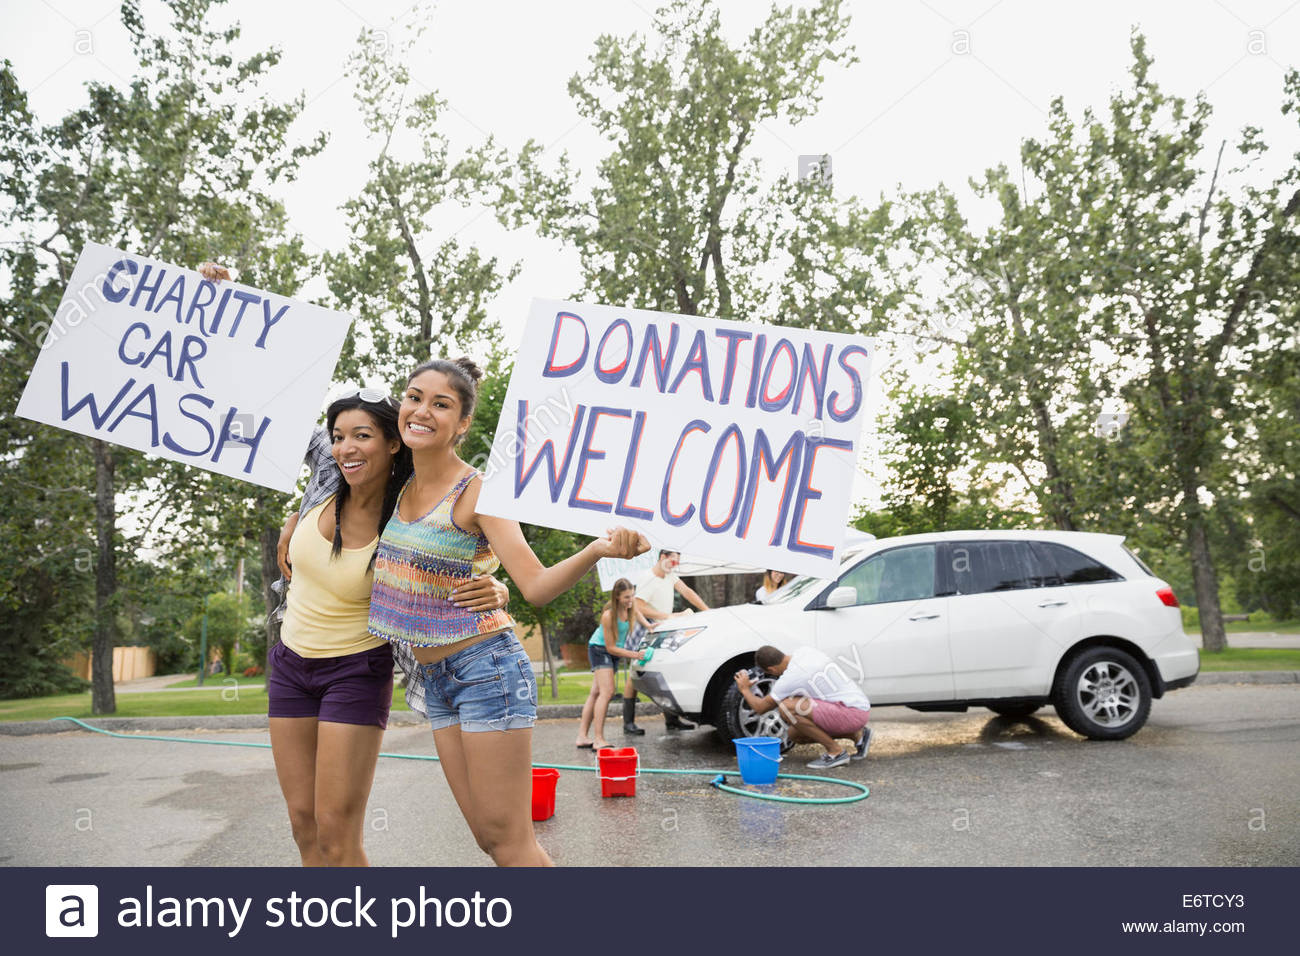 Volunteers holding charity car wash signs - Stock Image